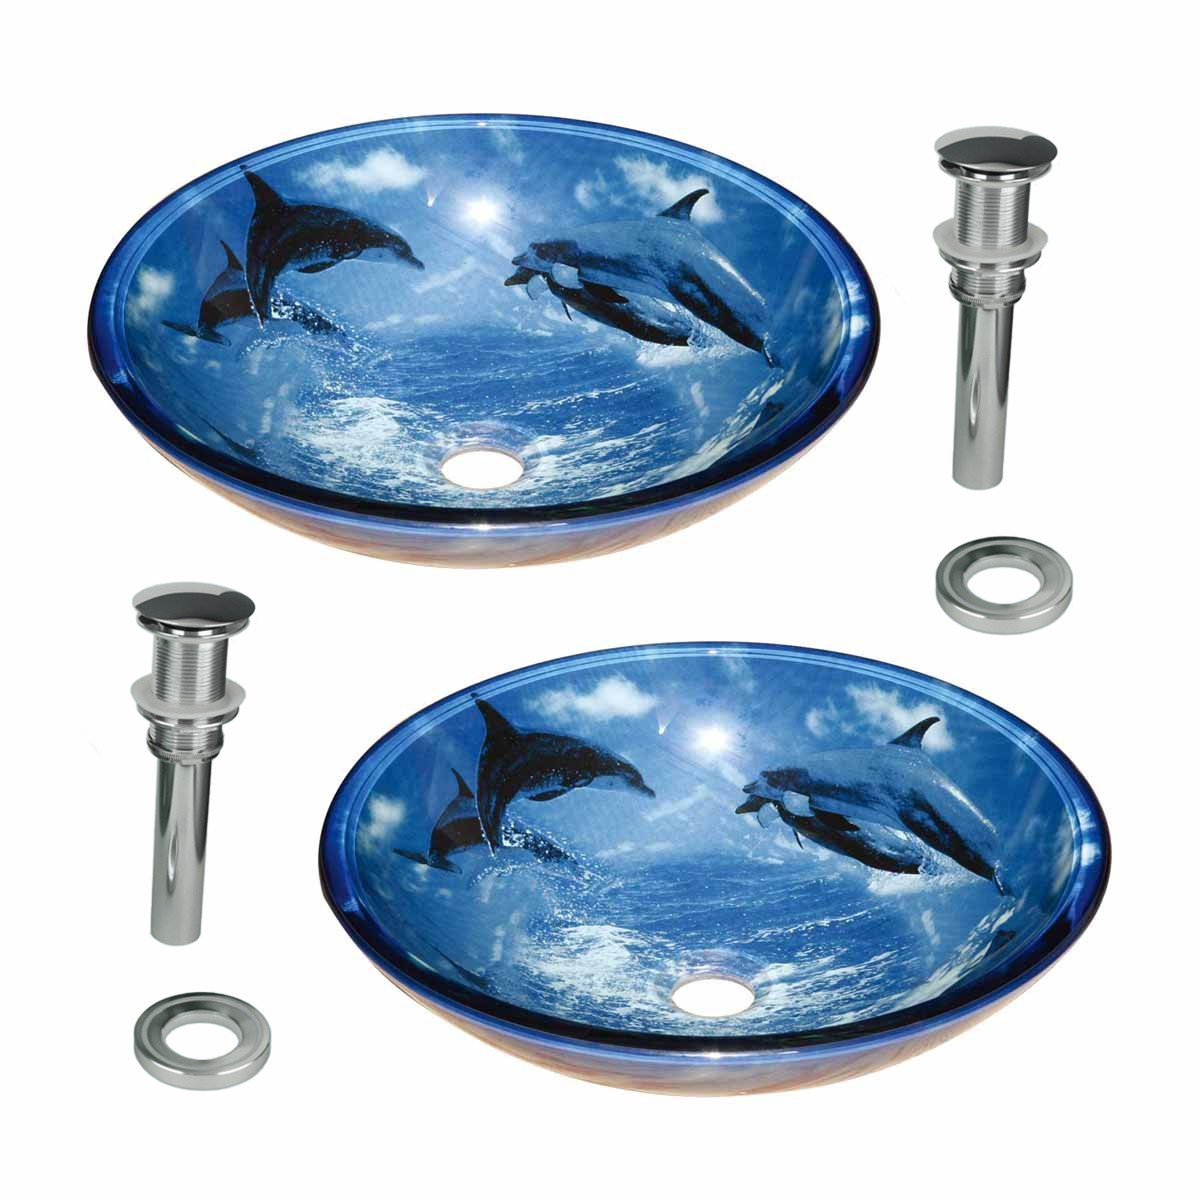 Tempered Glass Vessel Sinks with Drain, Dolphin Design Bl...